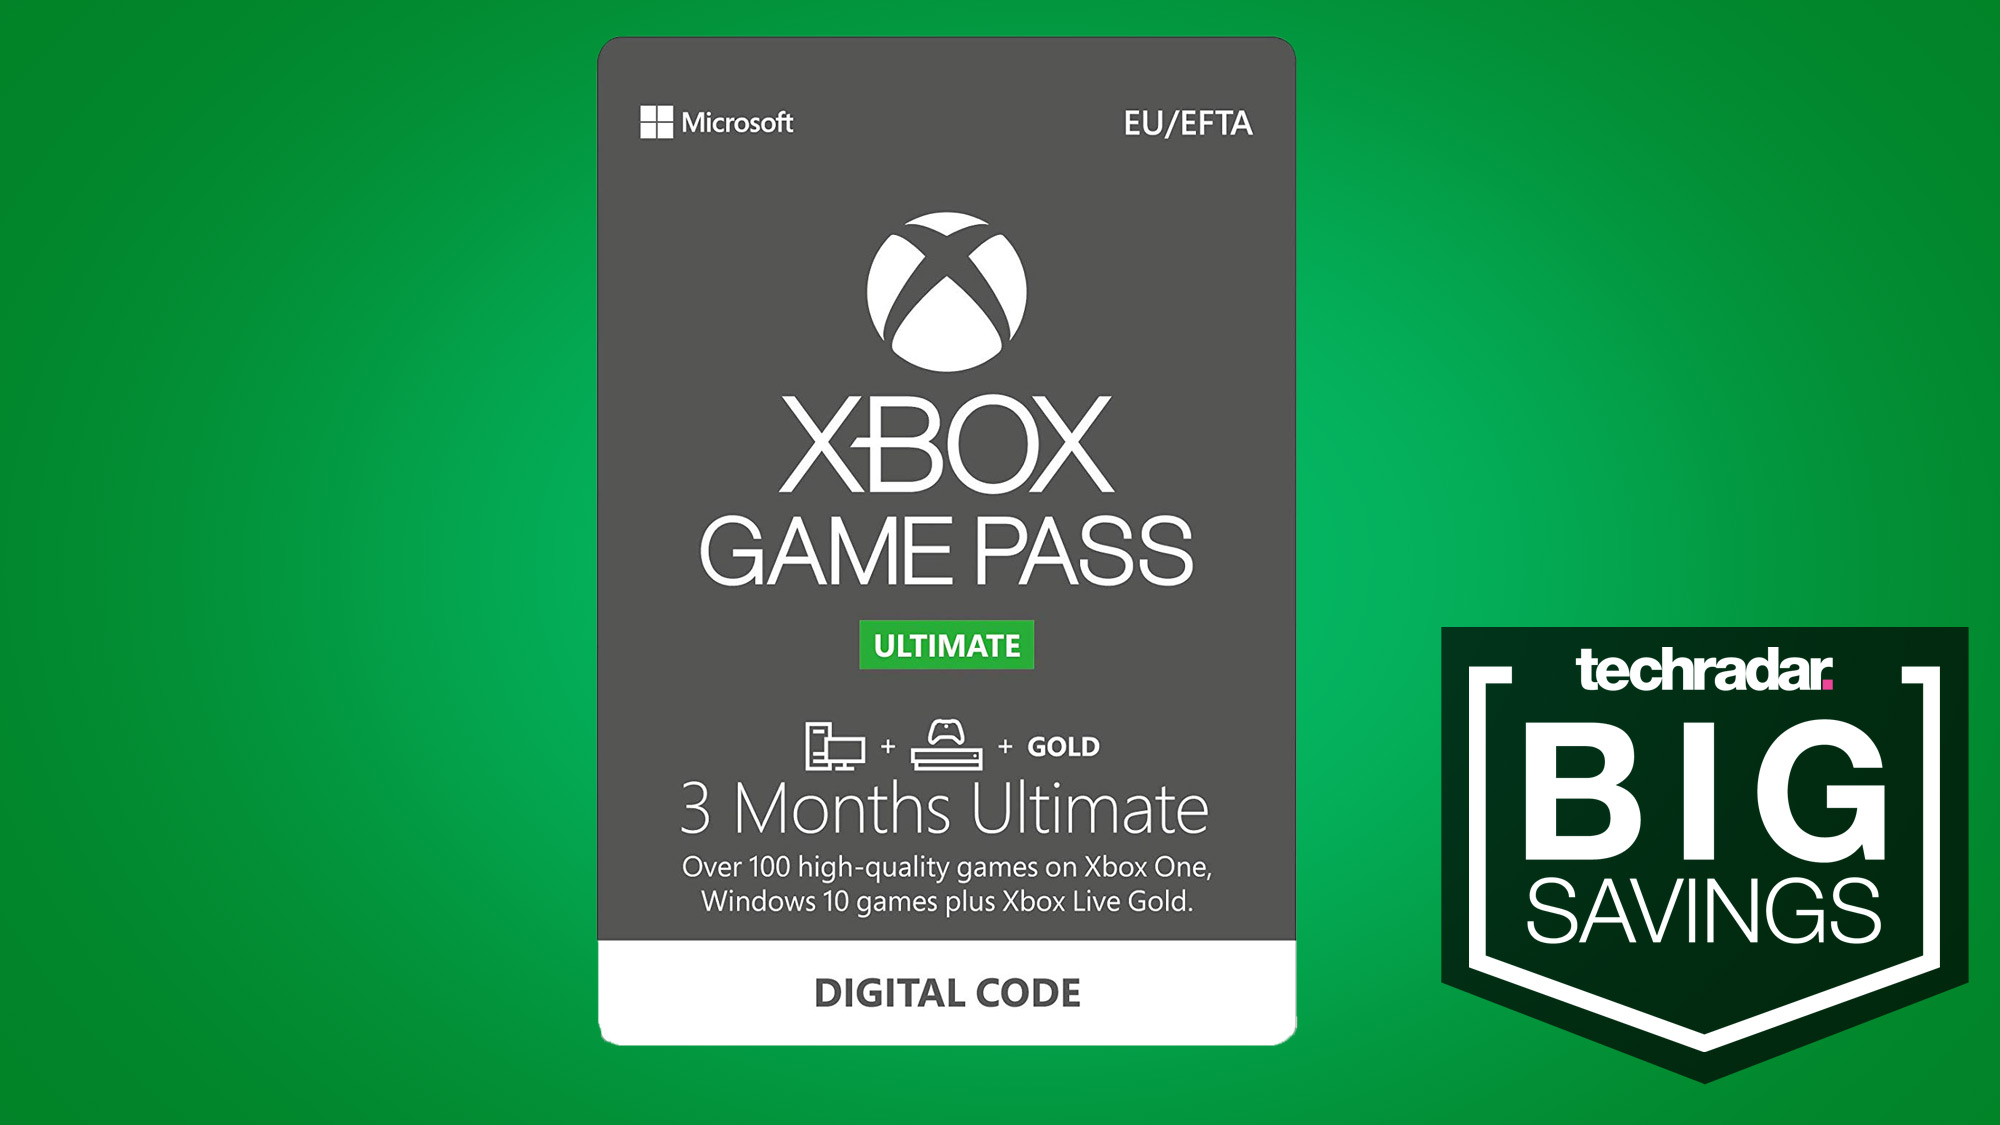 Here's how you can get 6 months of Xbox Game Pass Ultimate for just £17